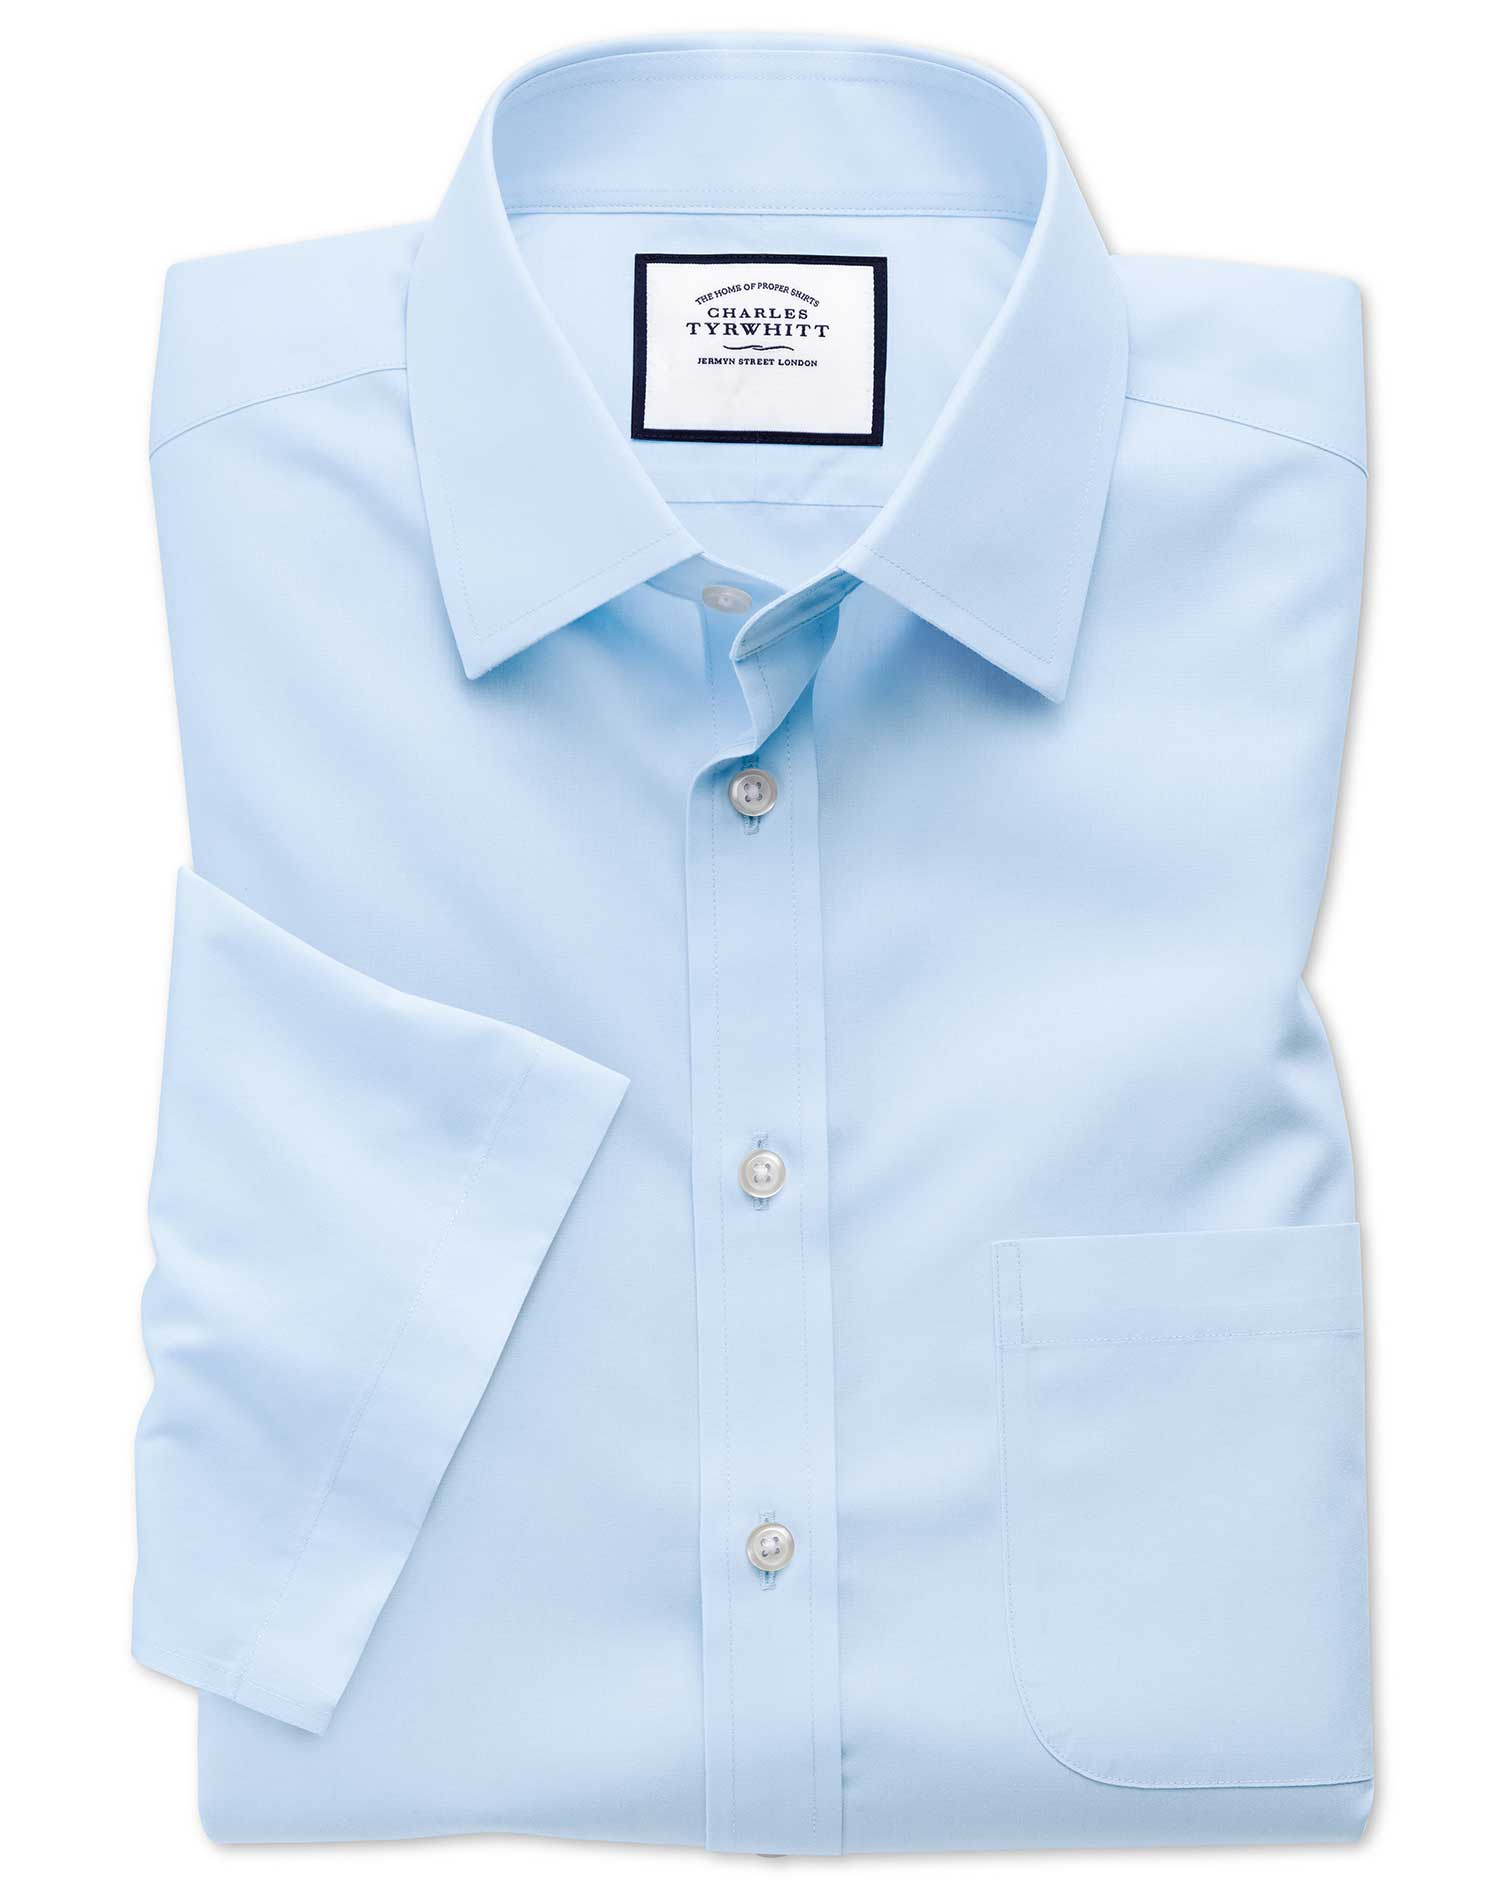 Slim Fit Non-Iron Poplin Short Sleeve Sky Cotton Formal Shirt Size 17.5/Short by Charles Tyrwhitt